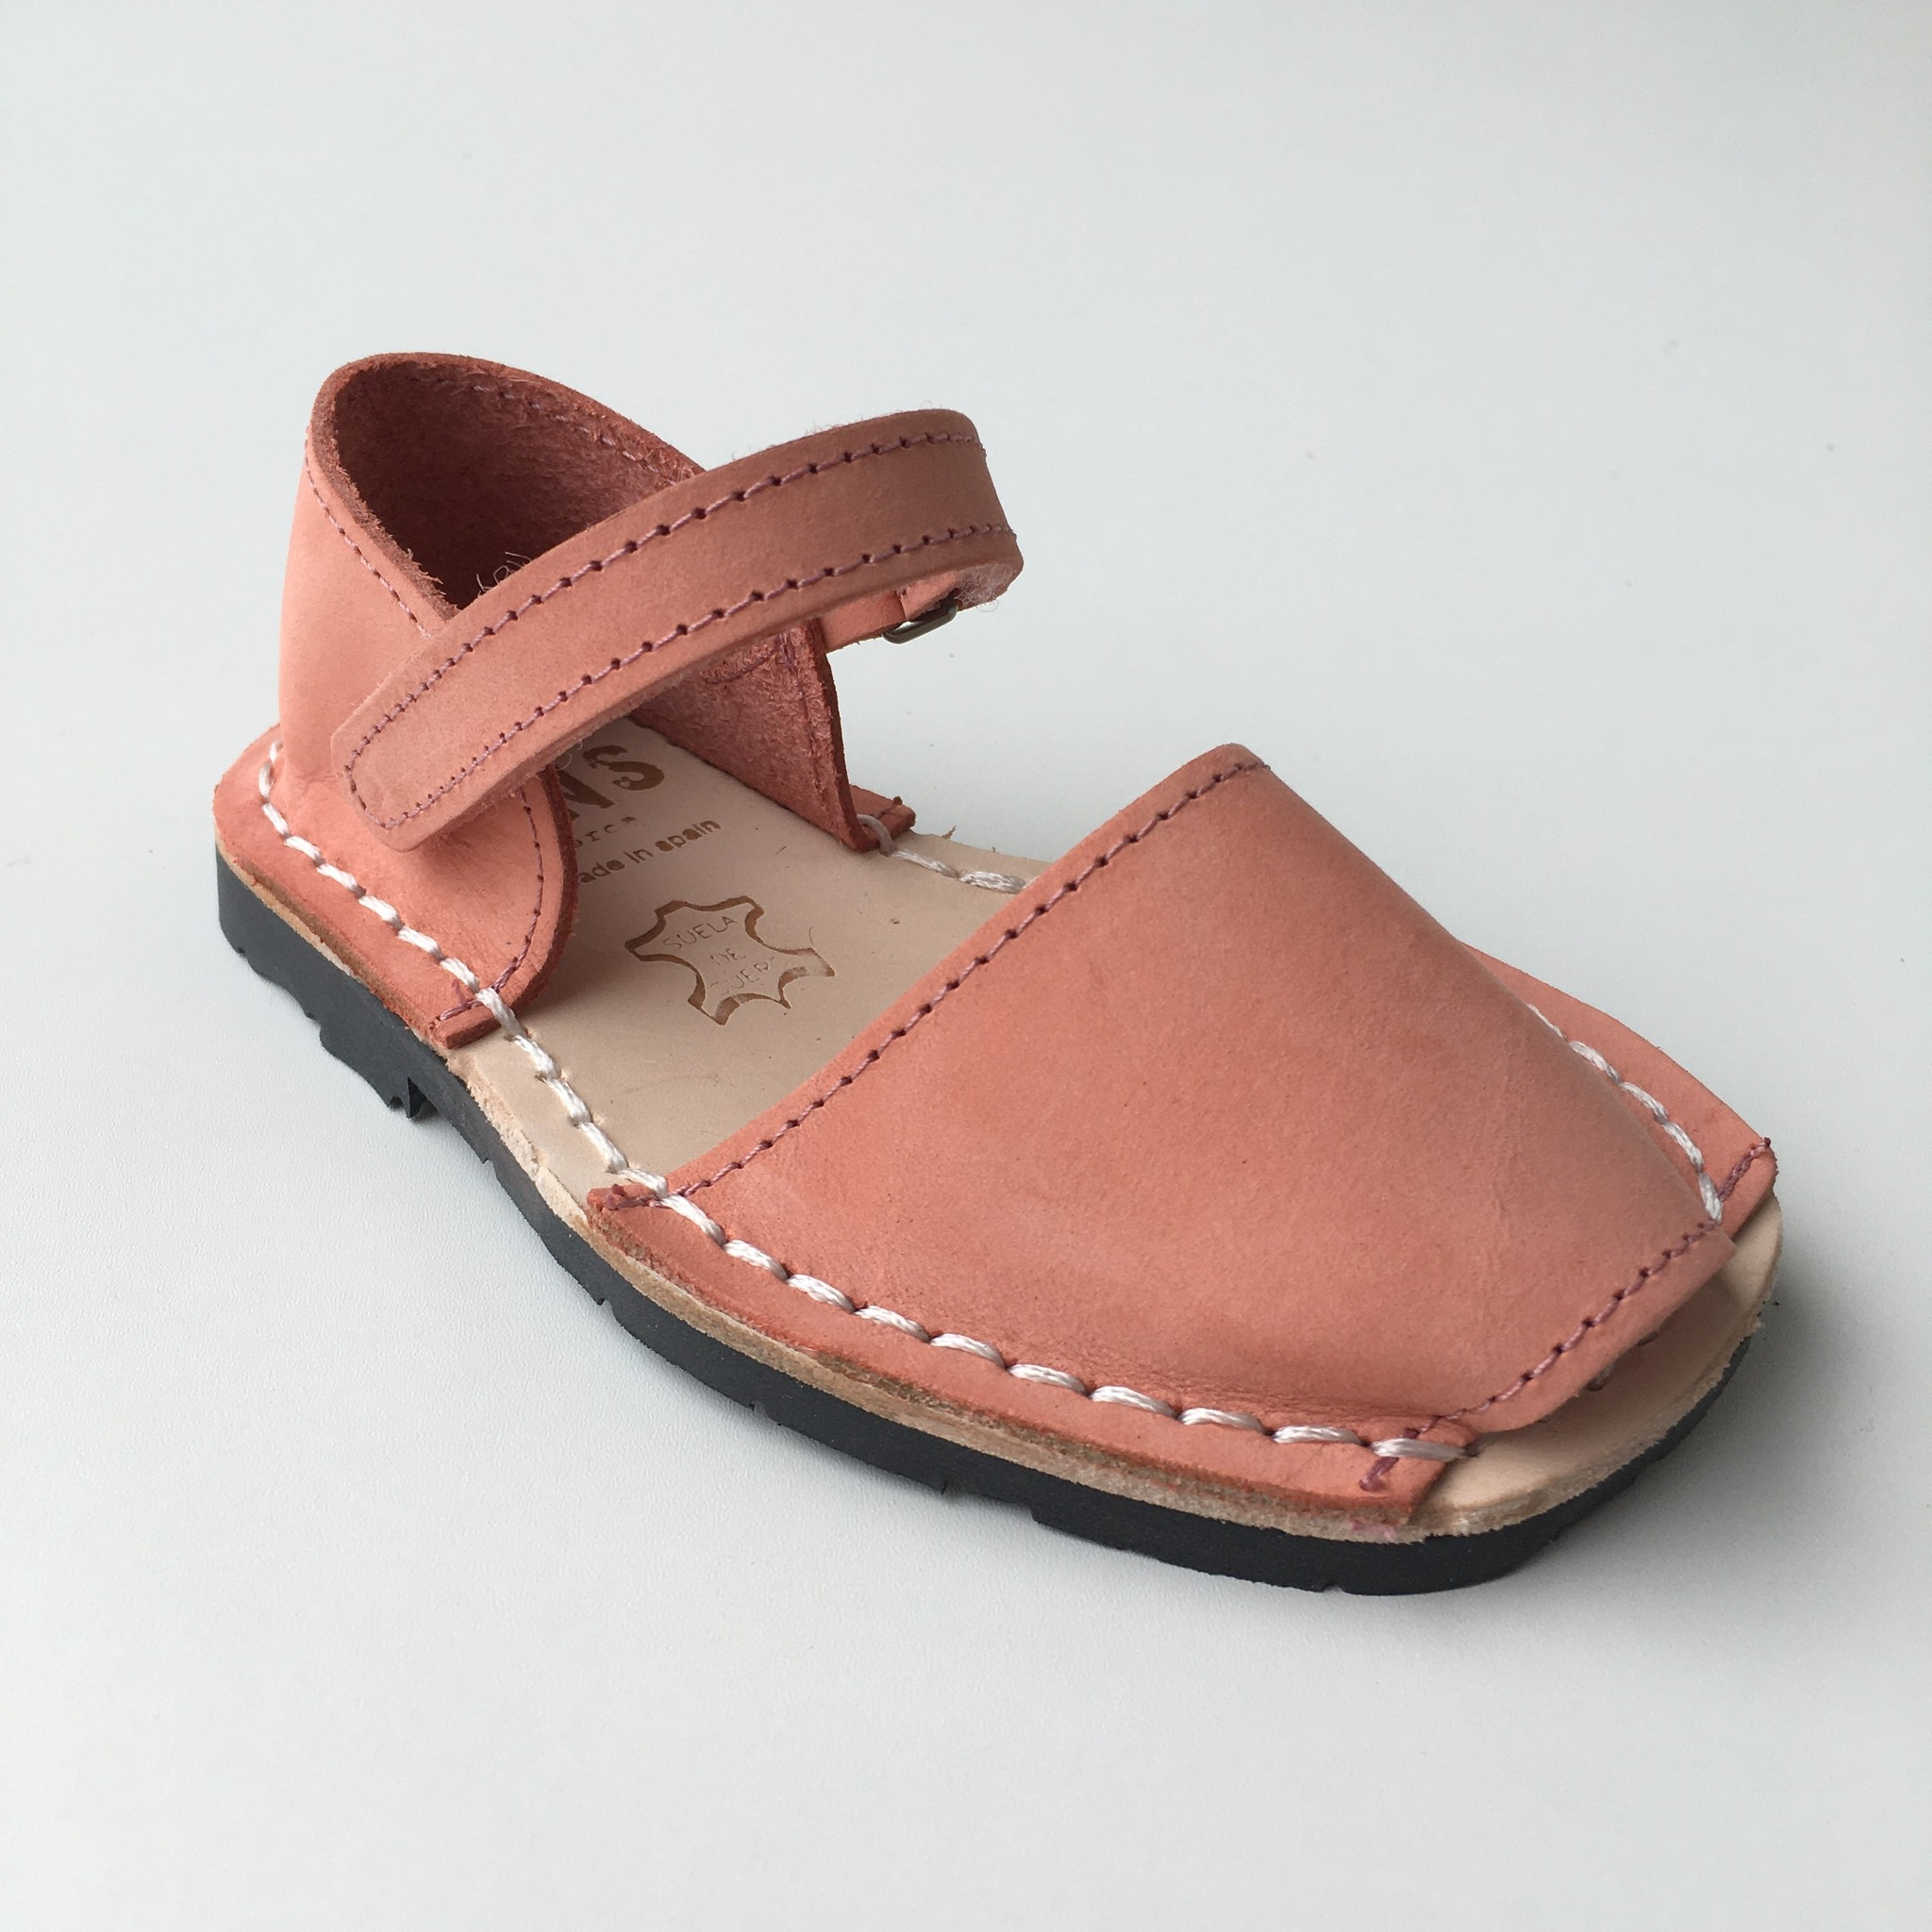 Pons  nubuck leather avarca sandal child BOSQUE - coral - 22 to 25